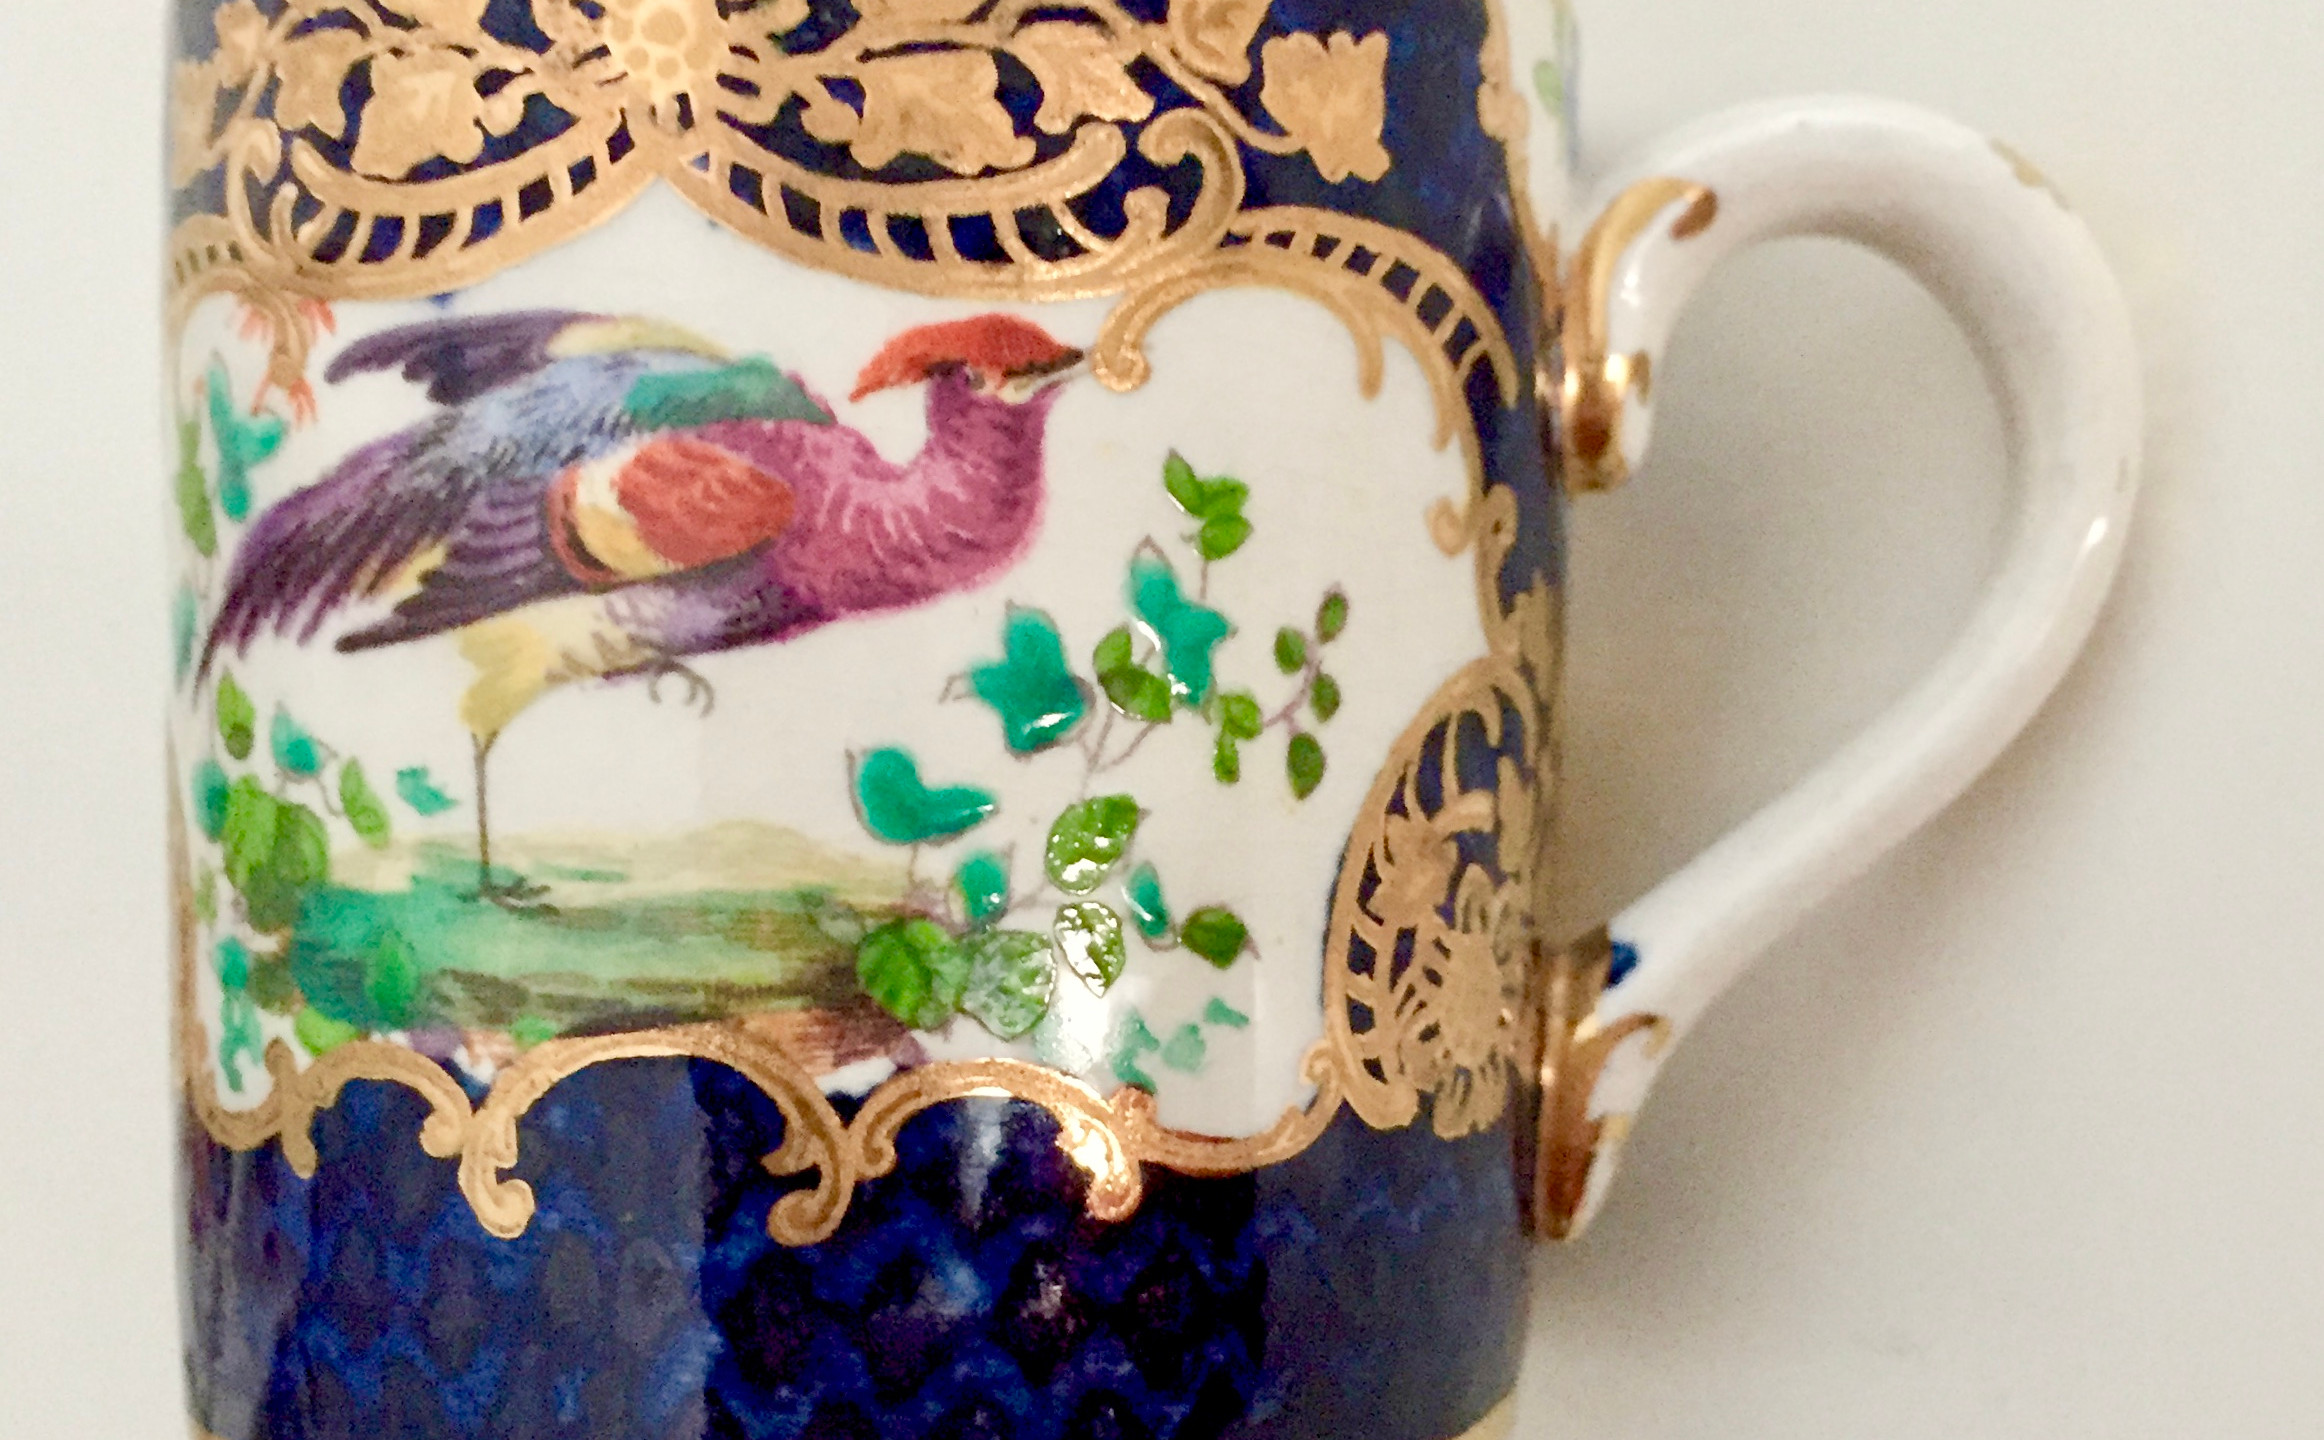 Booth imitation Worcester/Sevres